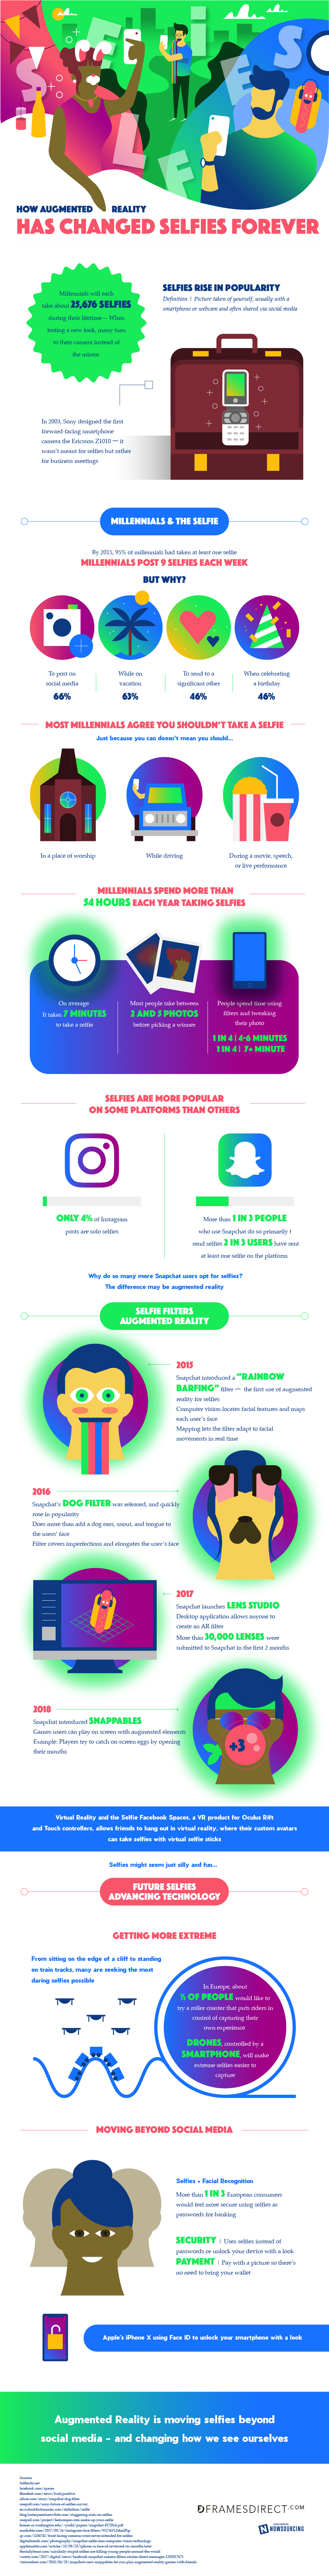 How Augmented Reality Will Transform the Future of Selfies - Infographic